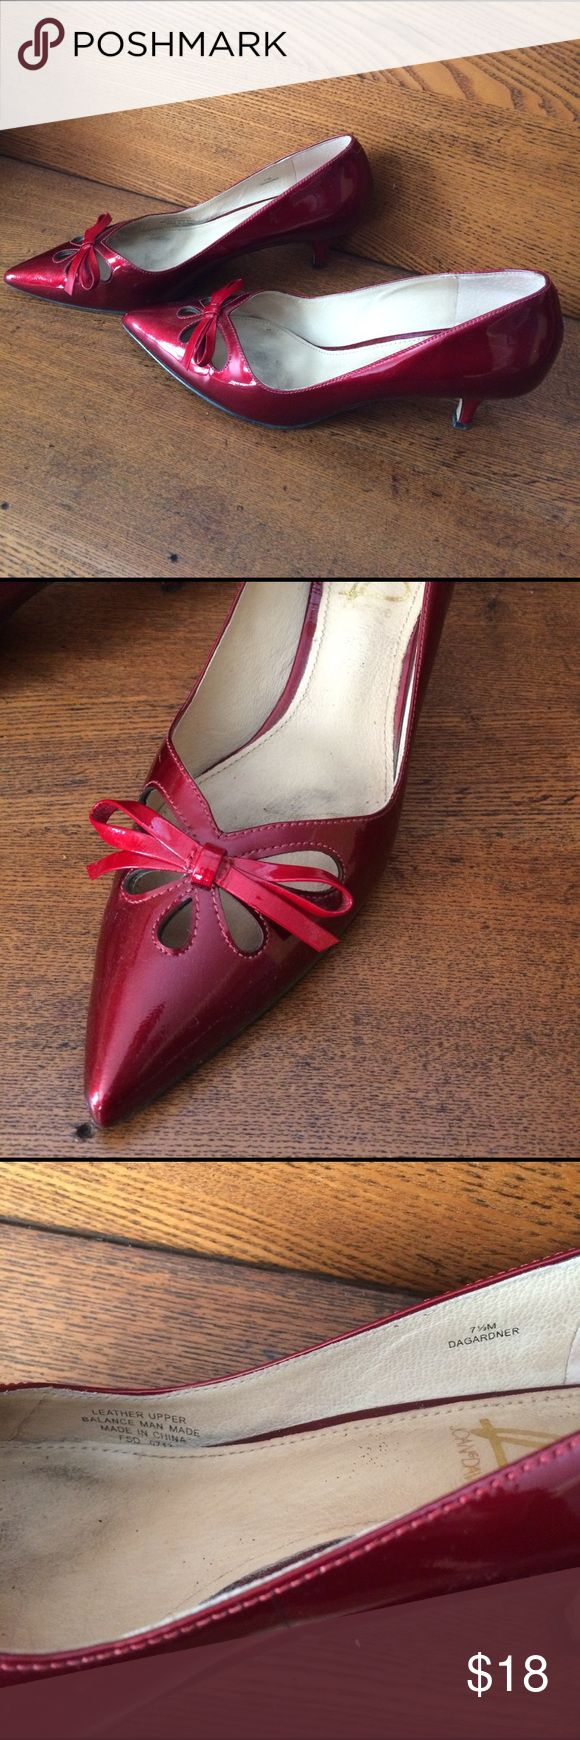 "Joan & David kitten heels. Joan & David Cranberry Patent Leather ""Dagardner"" kitten heel. Some wear which I've tried to highlight with photos. Still a lot of life left in these classics! Beautiful when paired with Navy & White! Joan & David Shoes Heels"